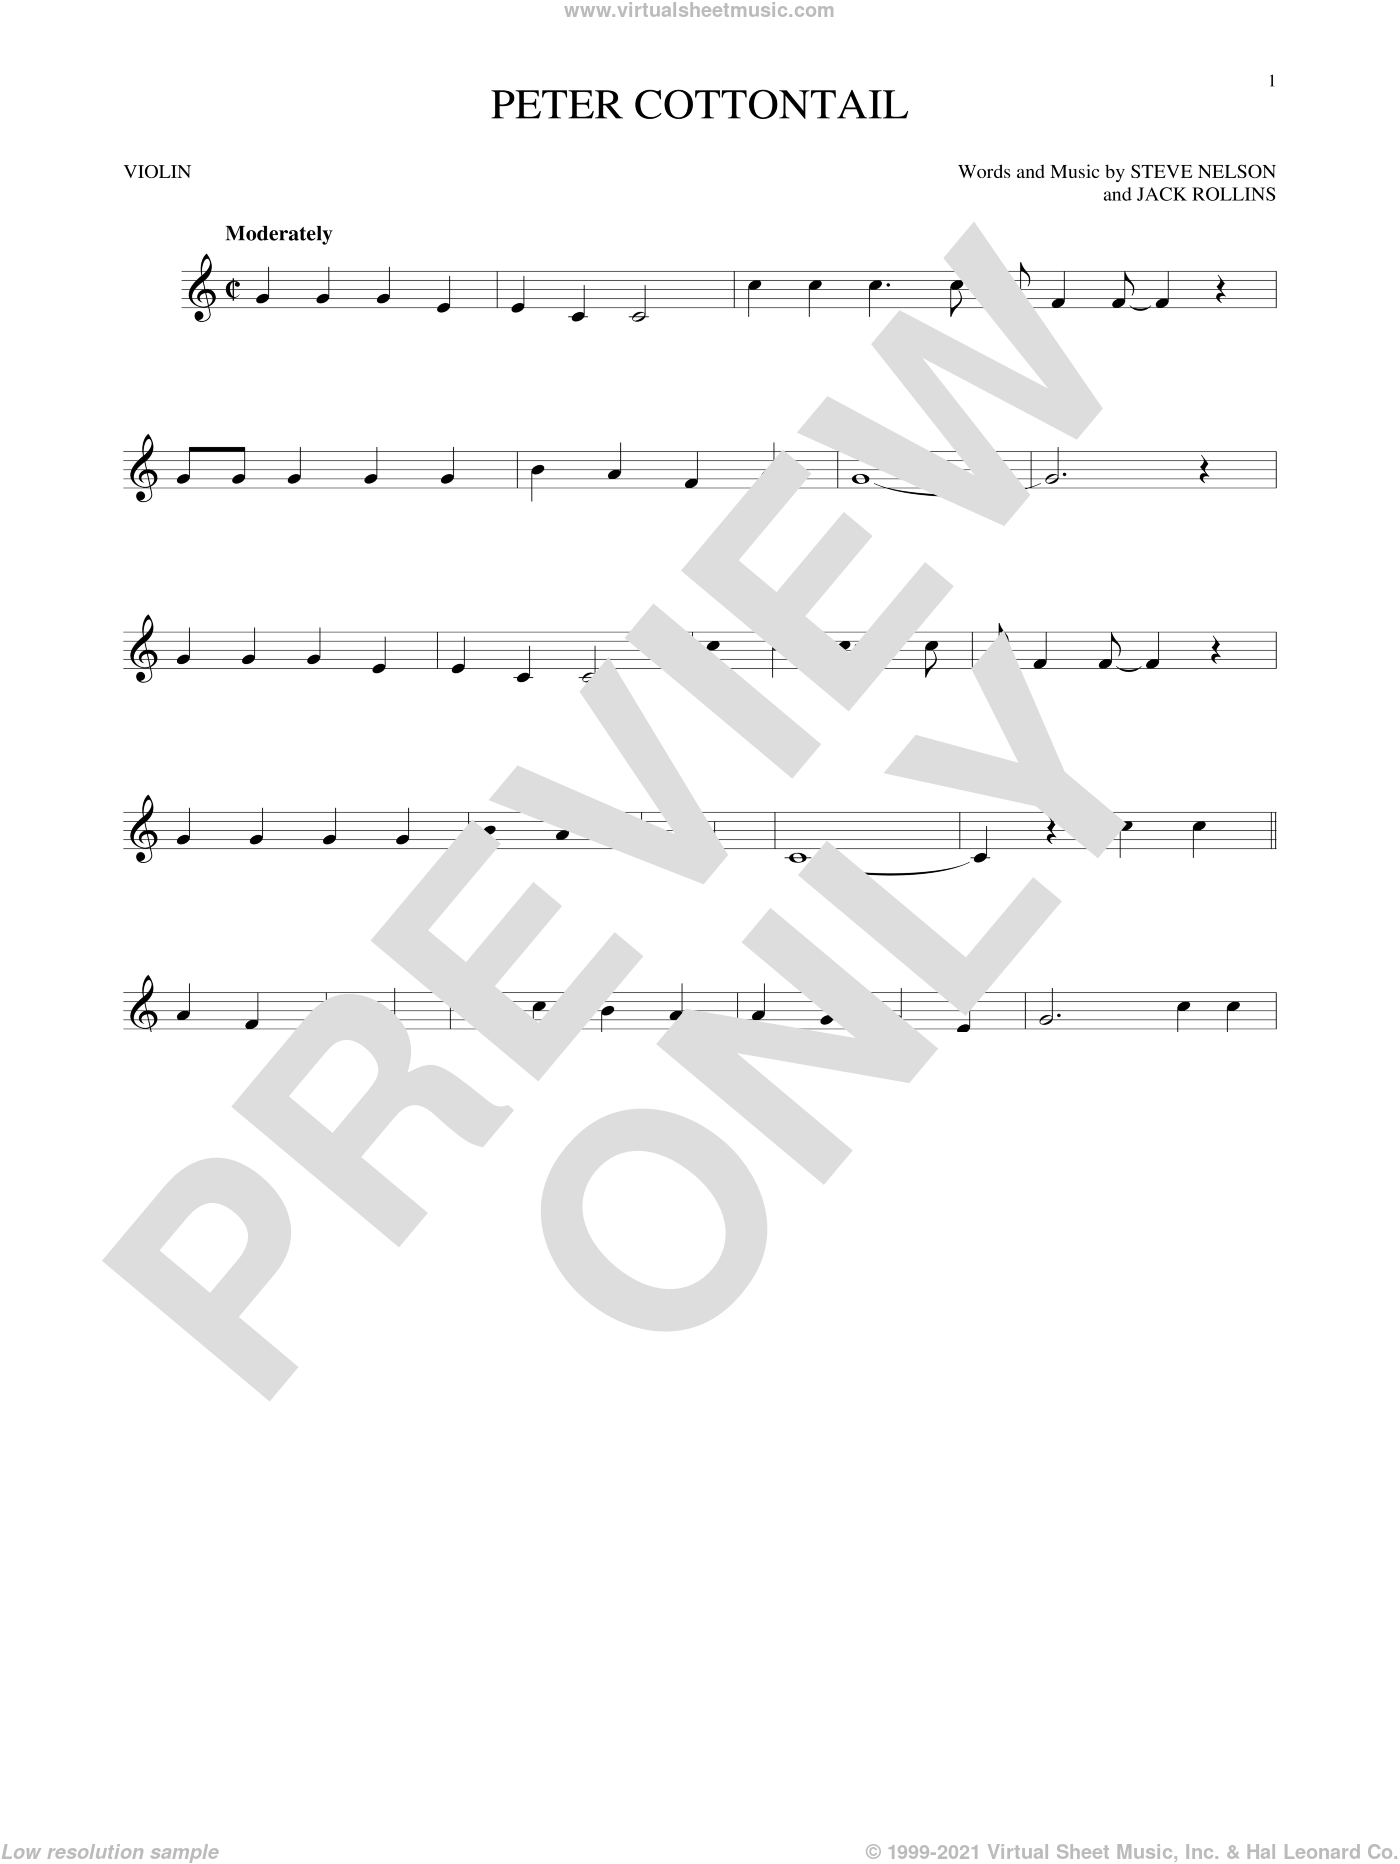 Peter Cottontail sheet music for violin solo by Steve Nelson and Jack Rollins, intermediate skill level